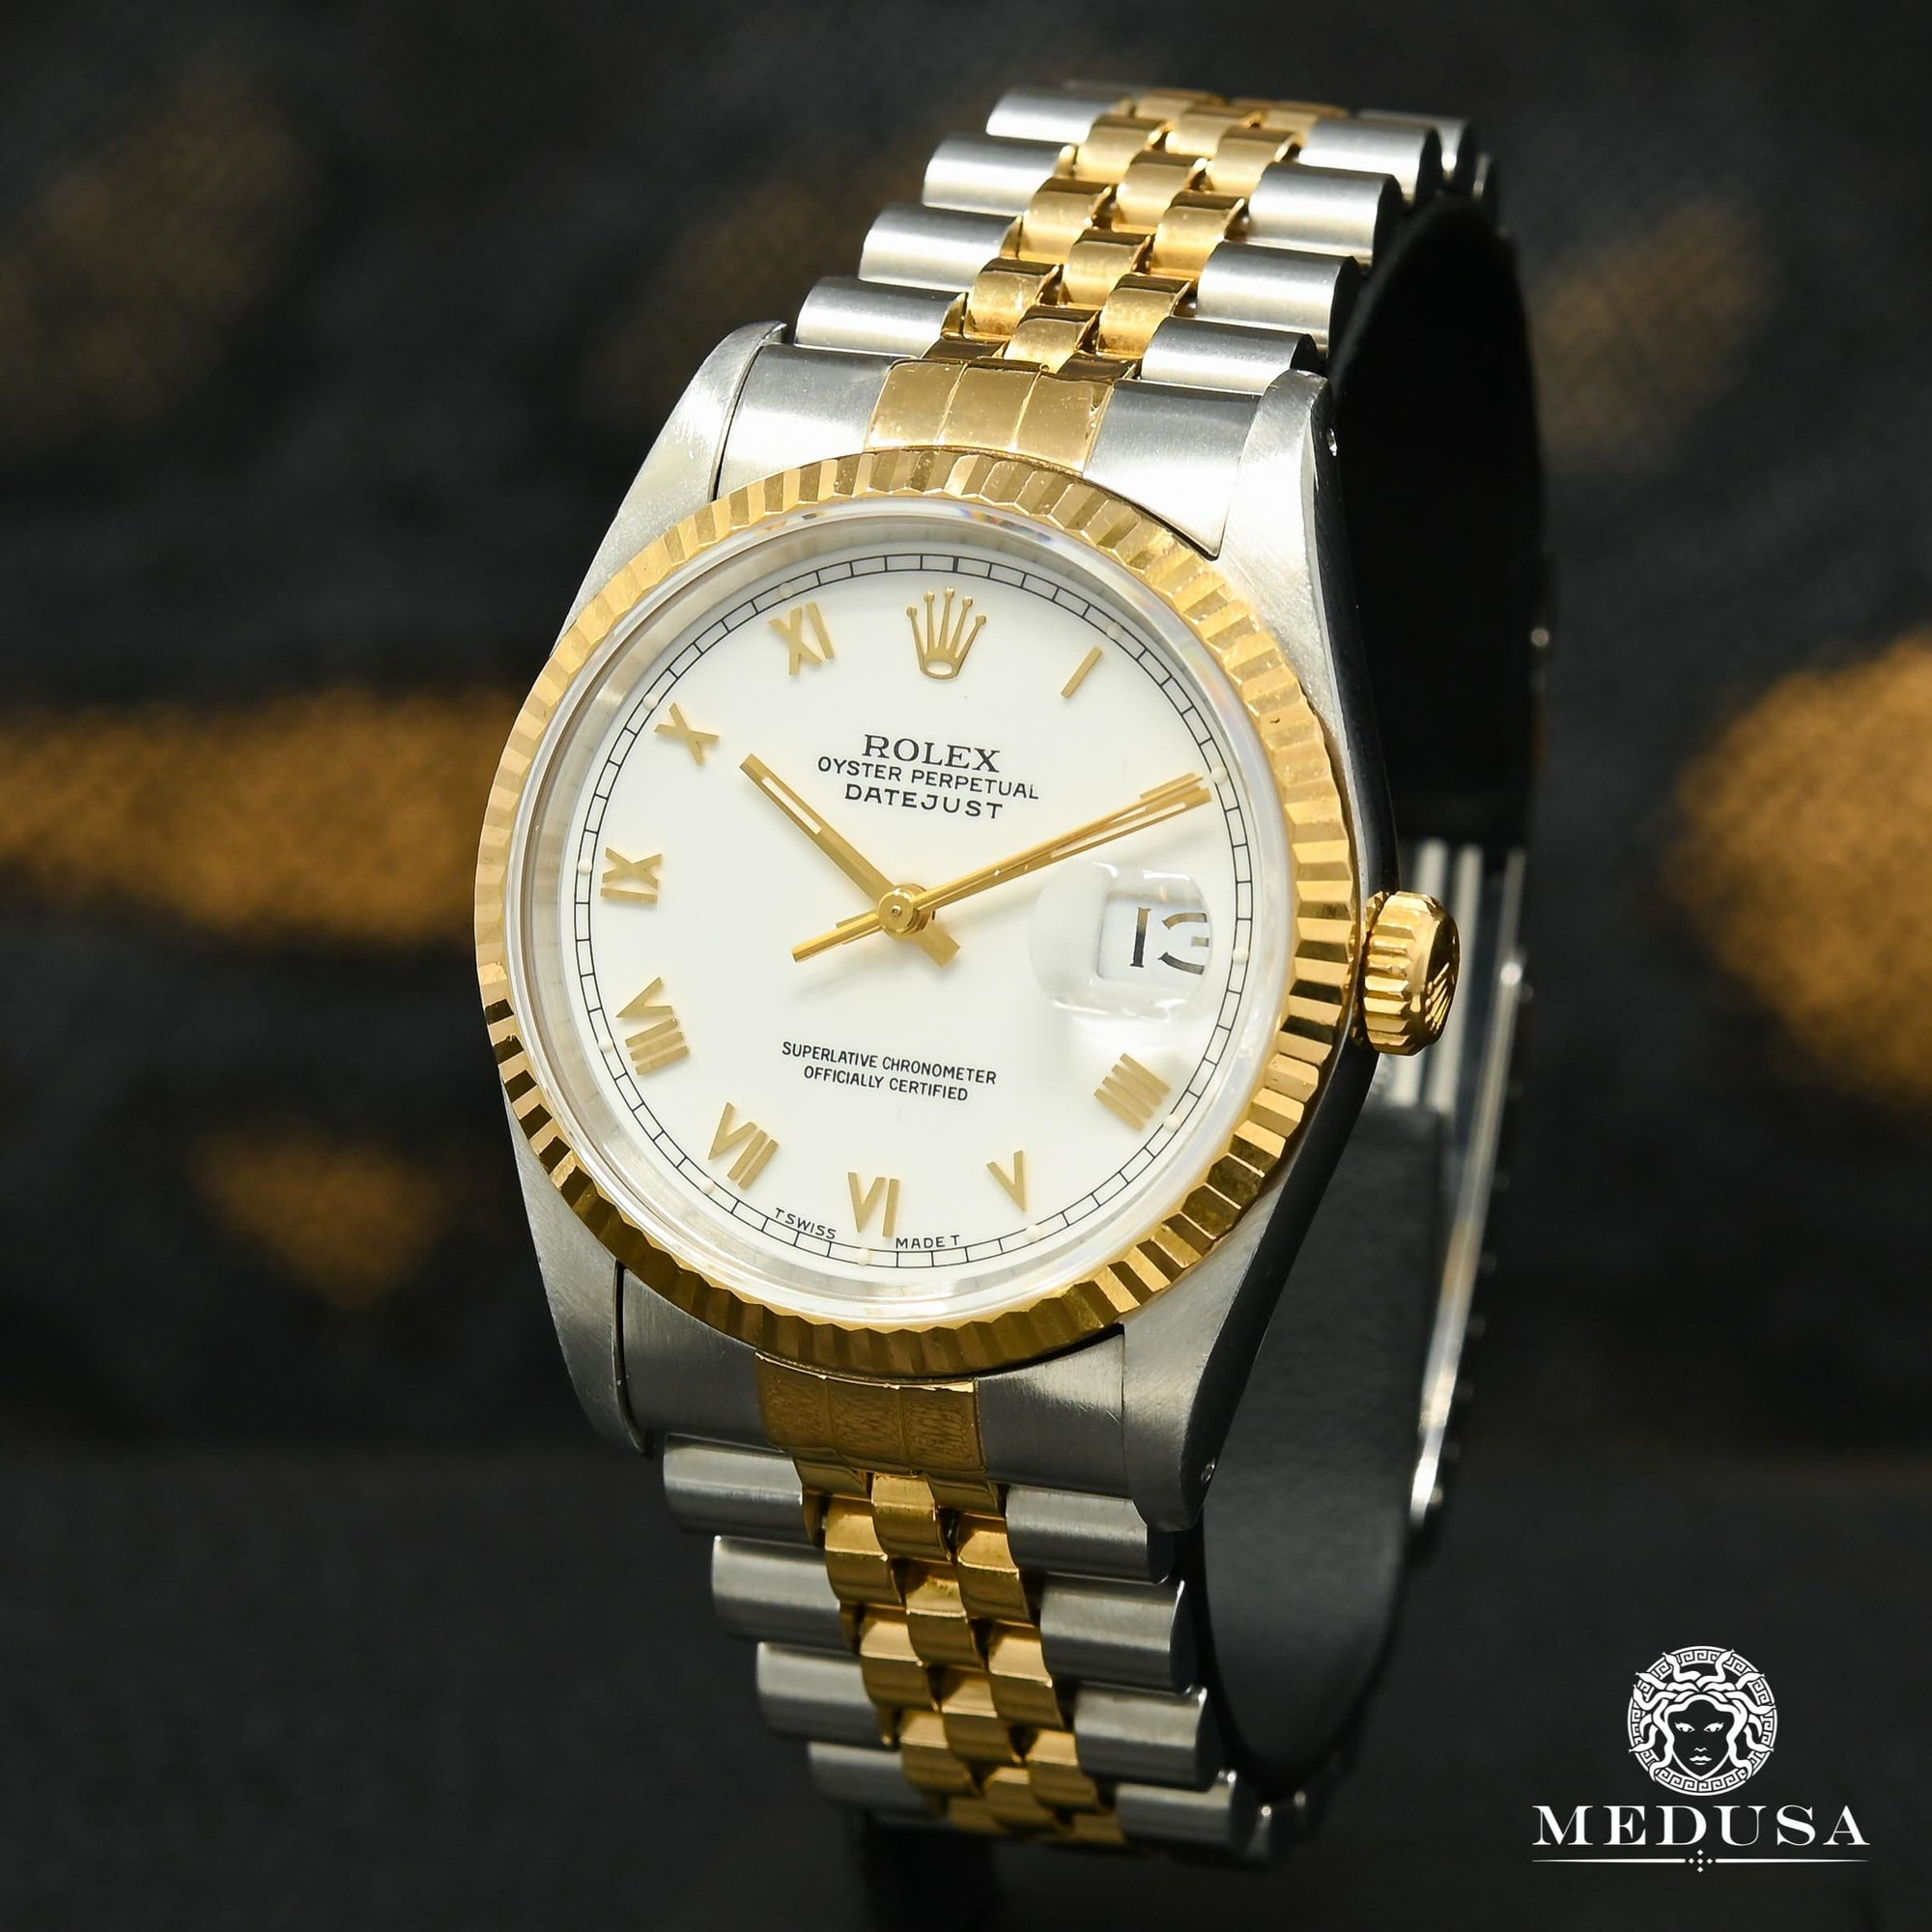 Rolex Datejust 36mm - Blanc Romain